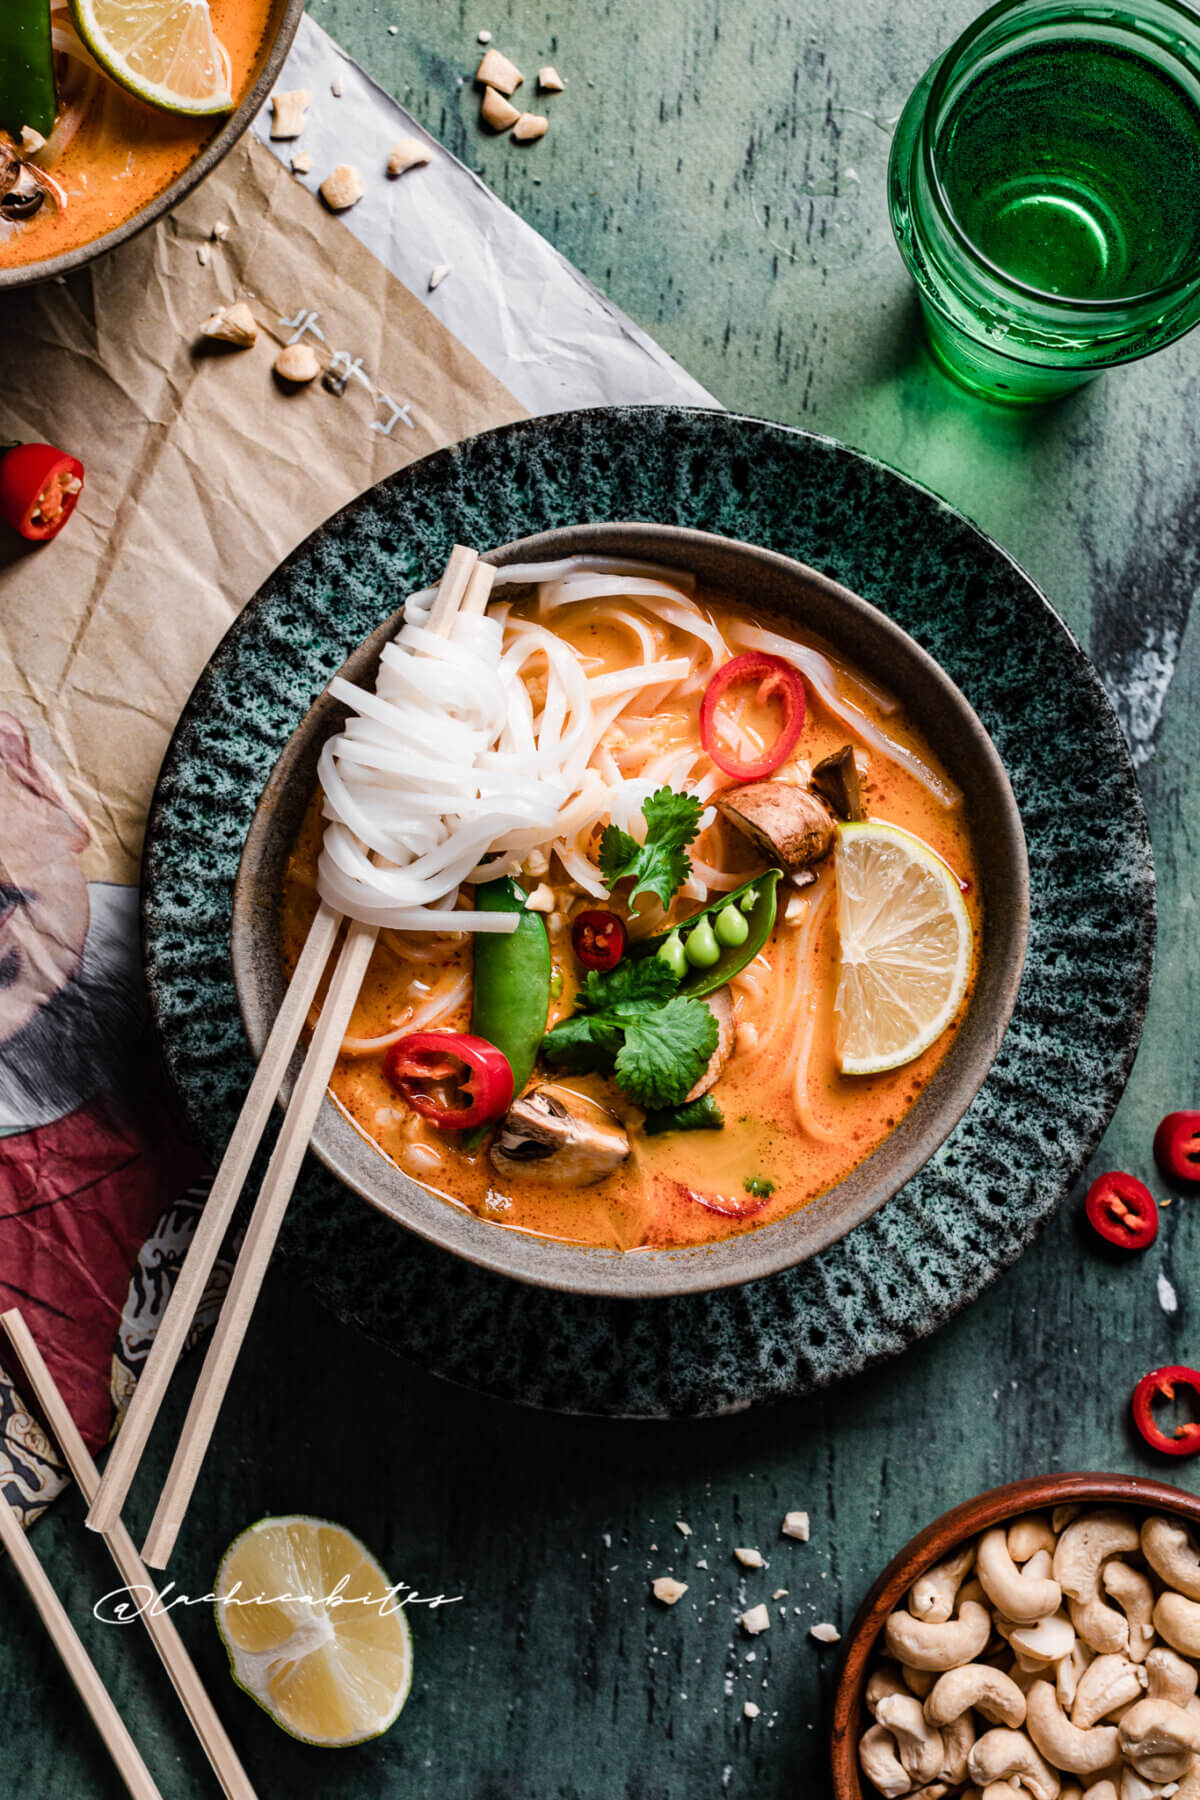 Homemade and easy VEGETARIAN RED THAI CURRY SOUP with coconut and lemongrass - recipe by Lachicabites